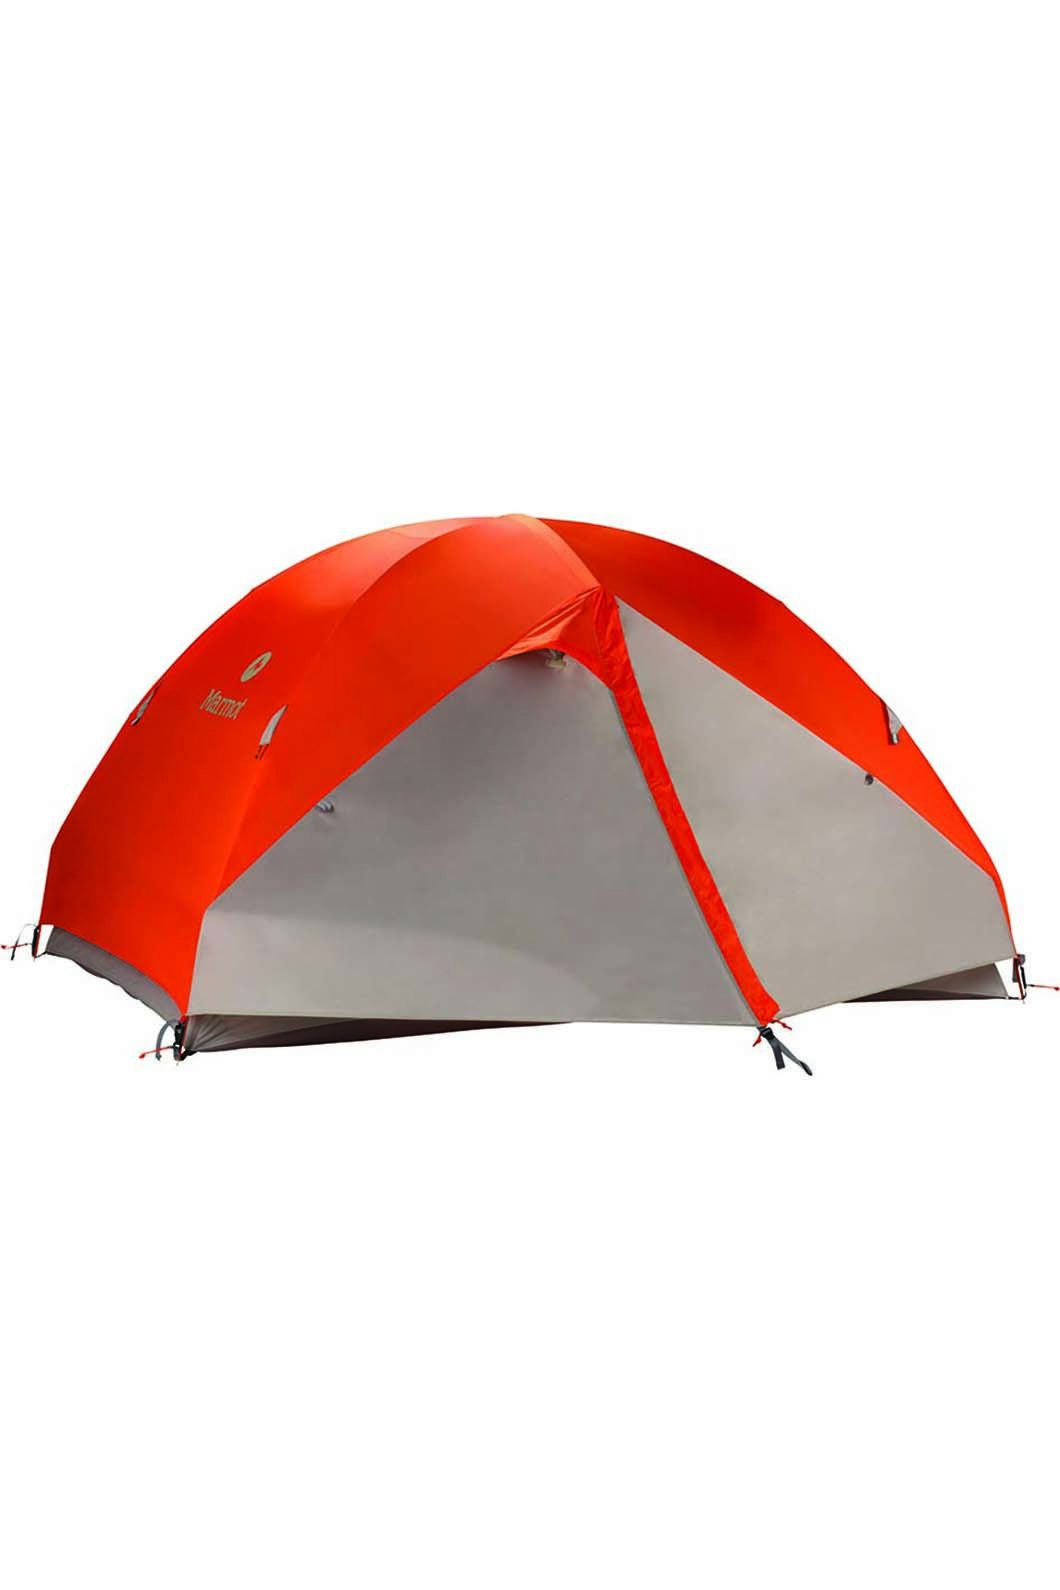 Marmot Tungsten 3 Person Hiking Tent, None, hi-res